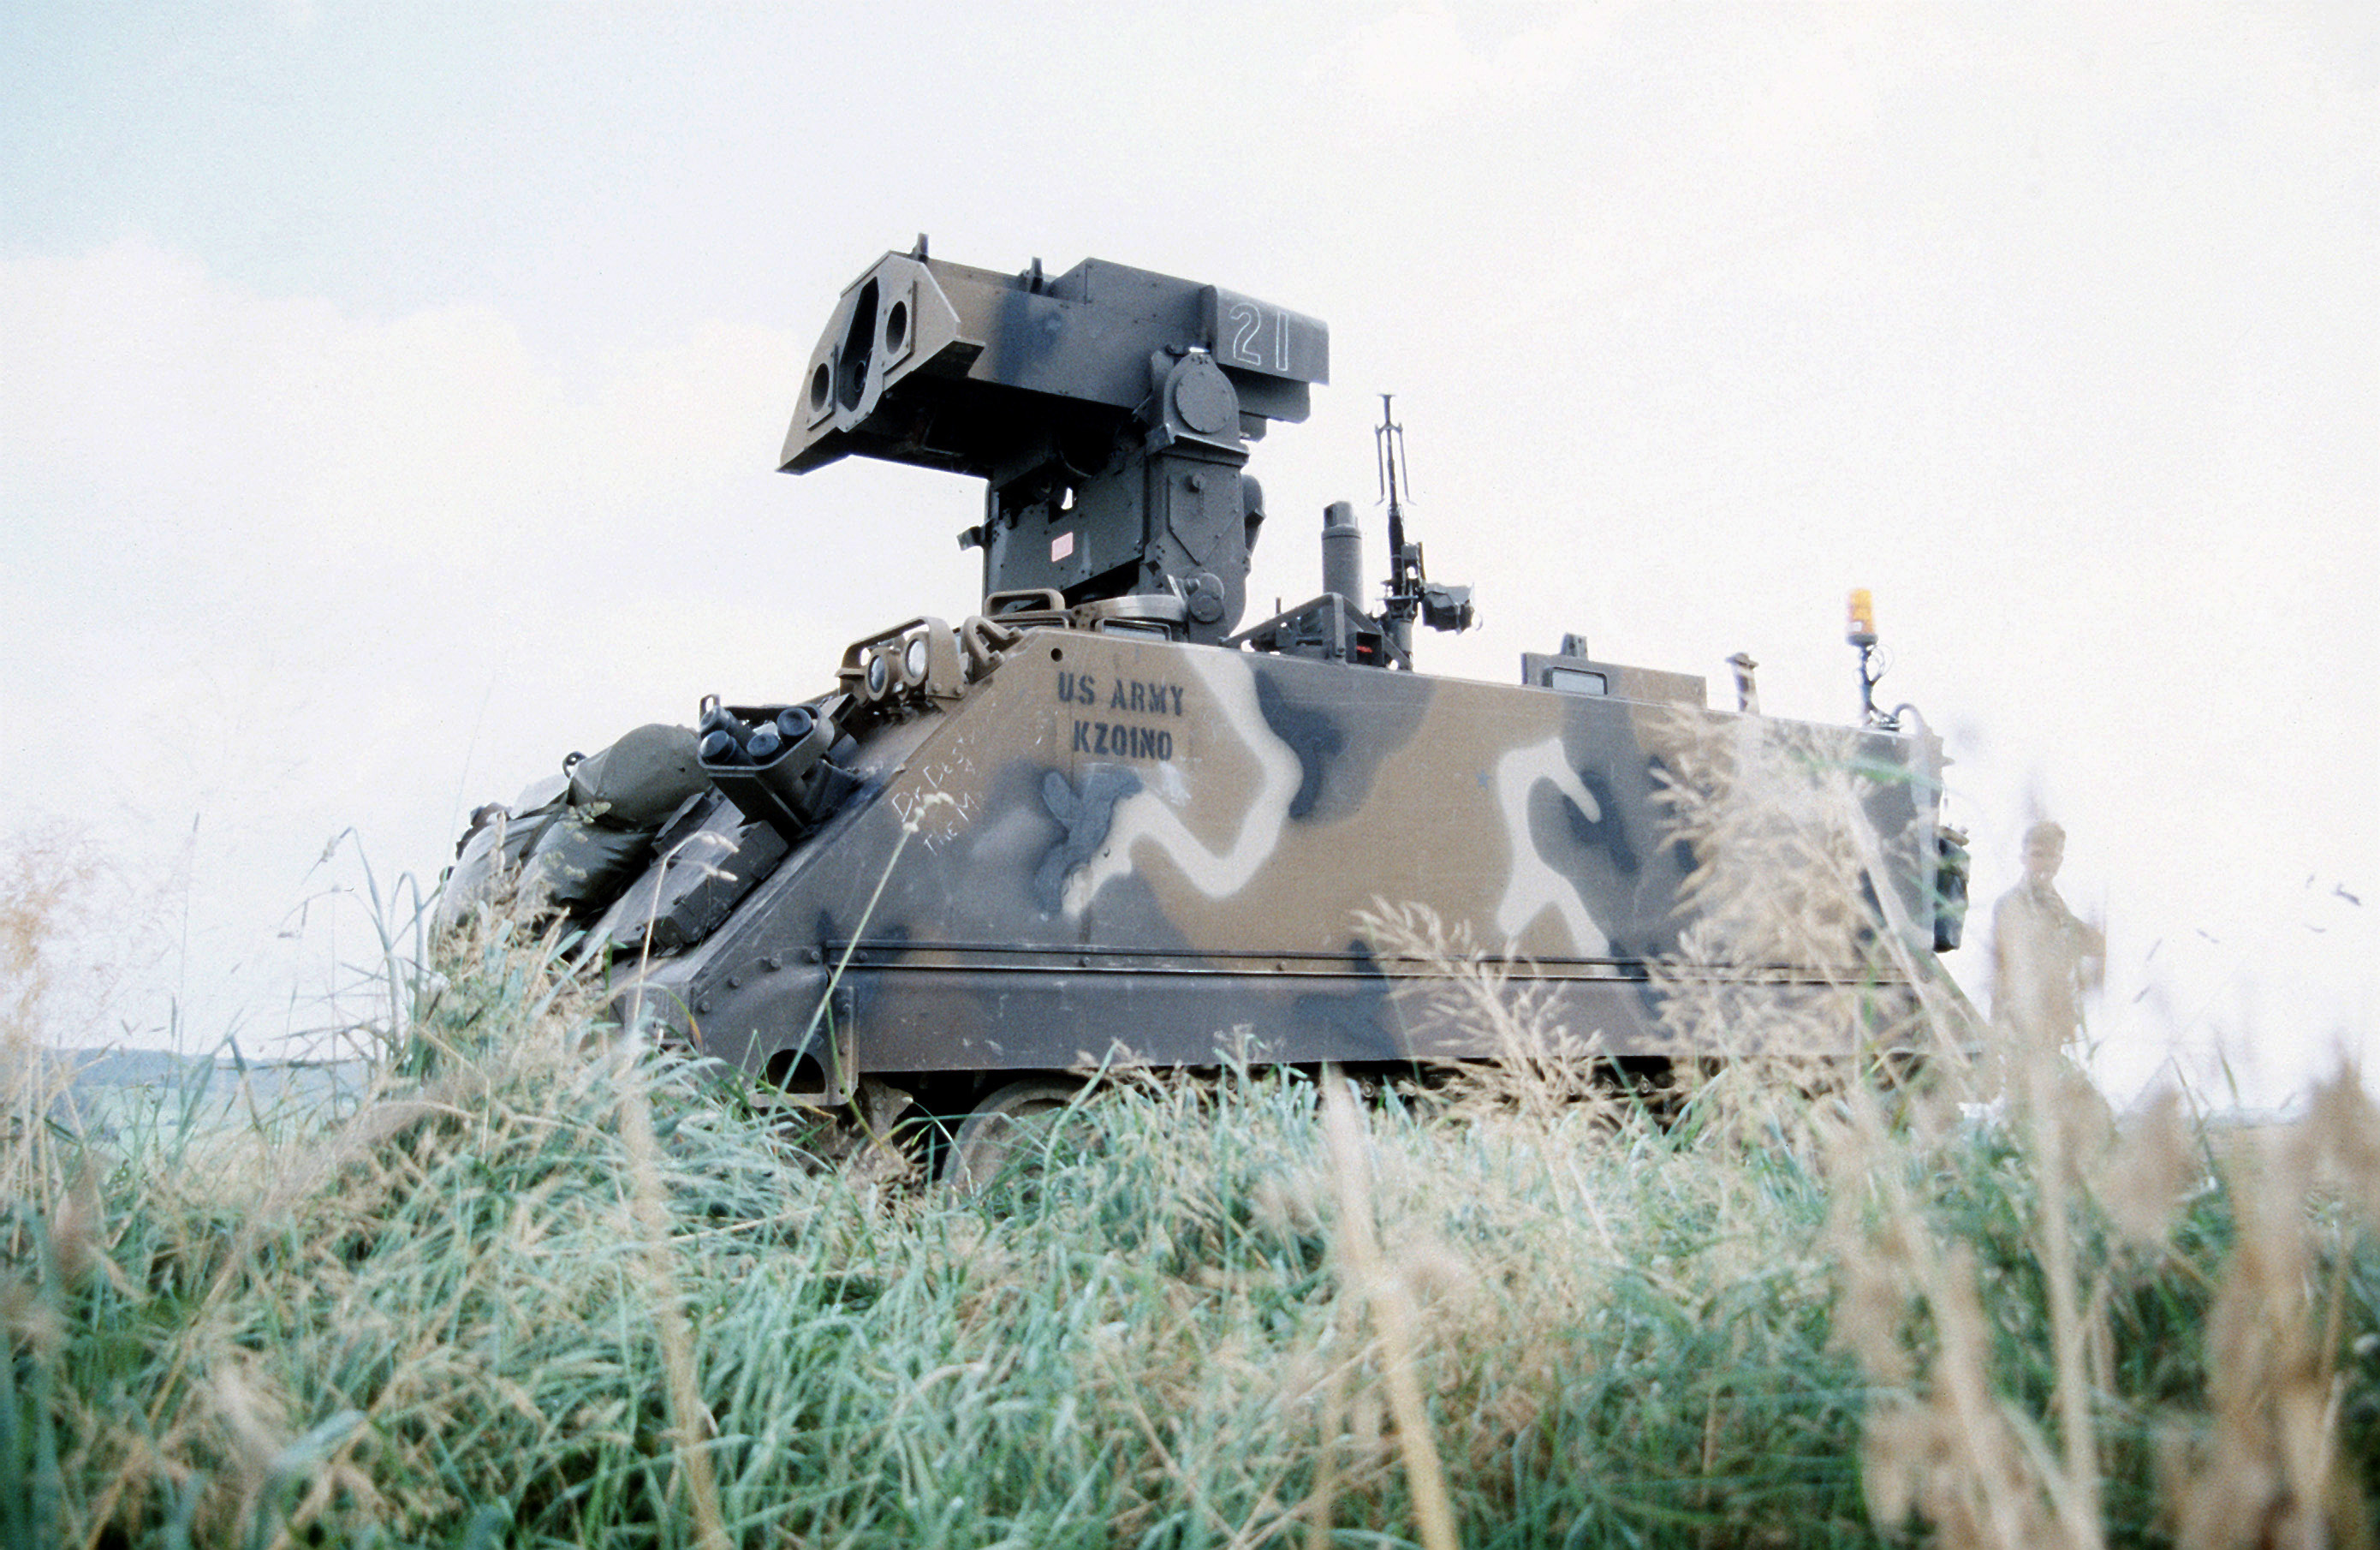 https://upload.wikimedia.org/wikipedia/commons/d/d1/M901_TOW_missile_vehicle_(1985).JPEG